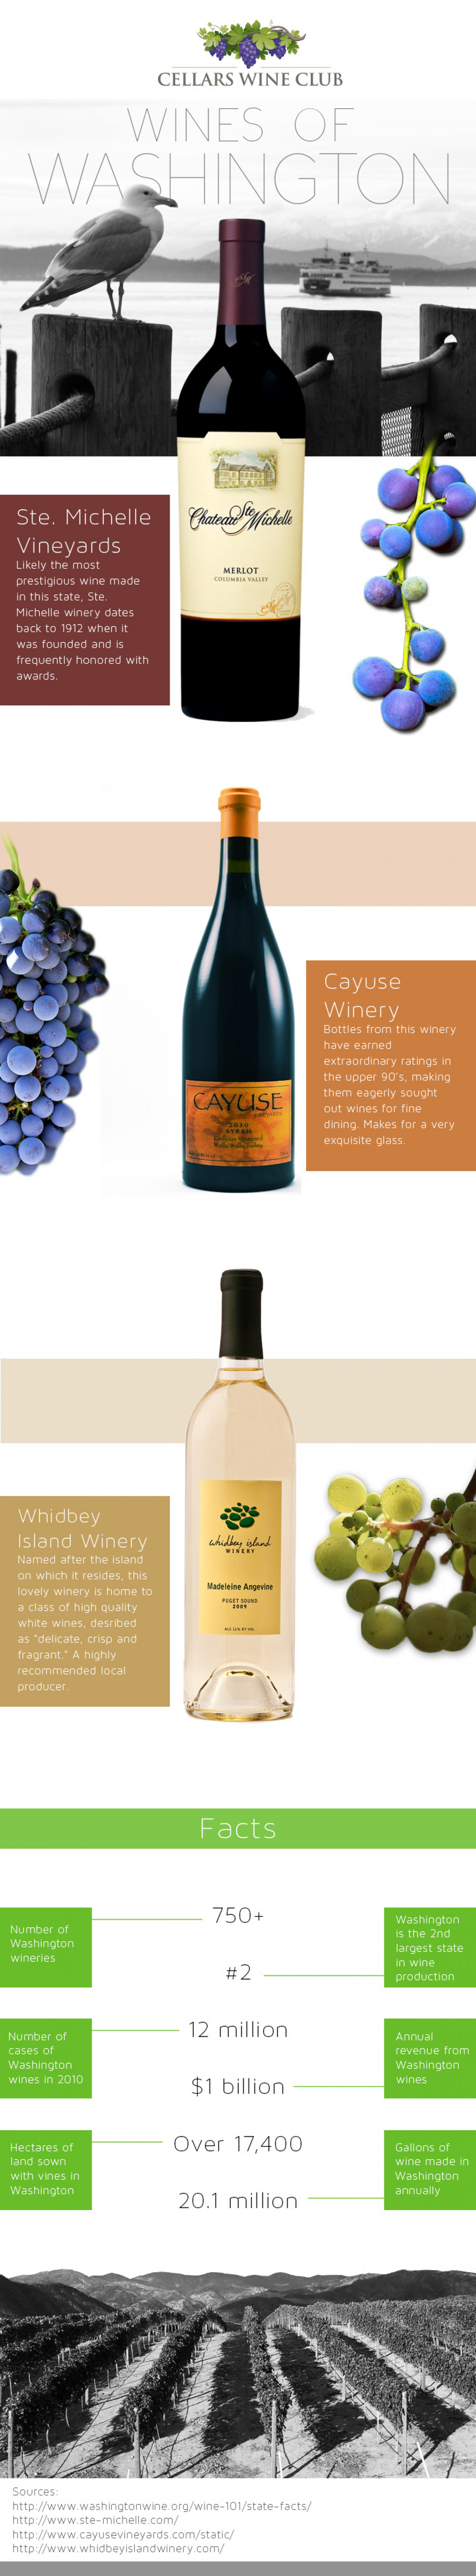 3 Best Wines of Washington Infographic